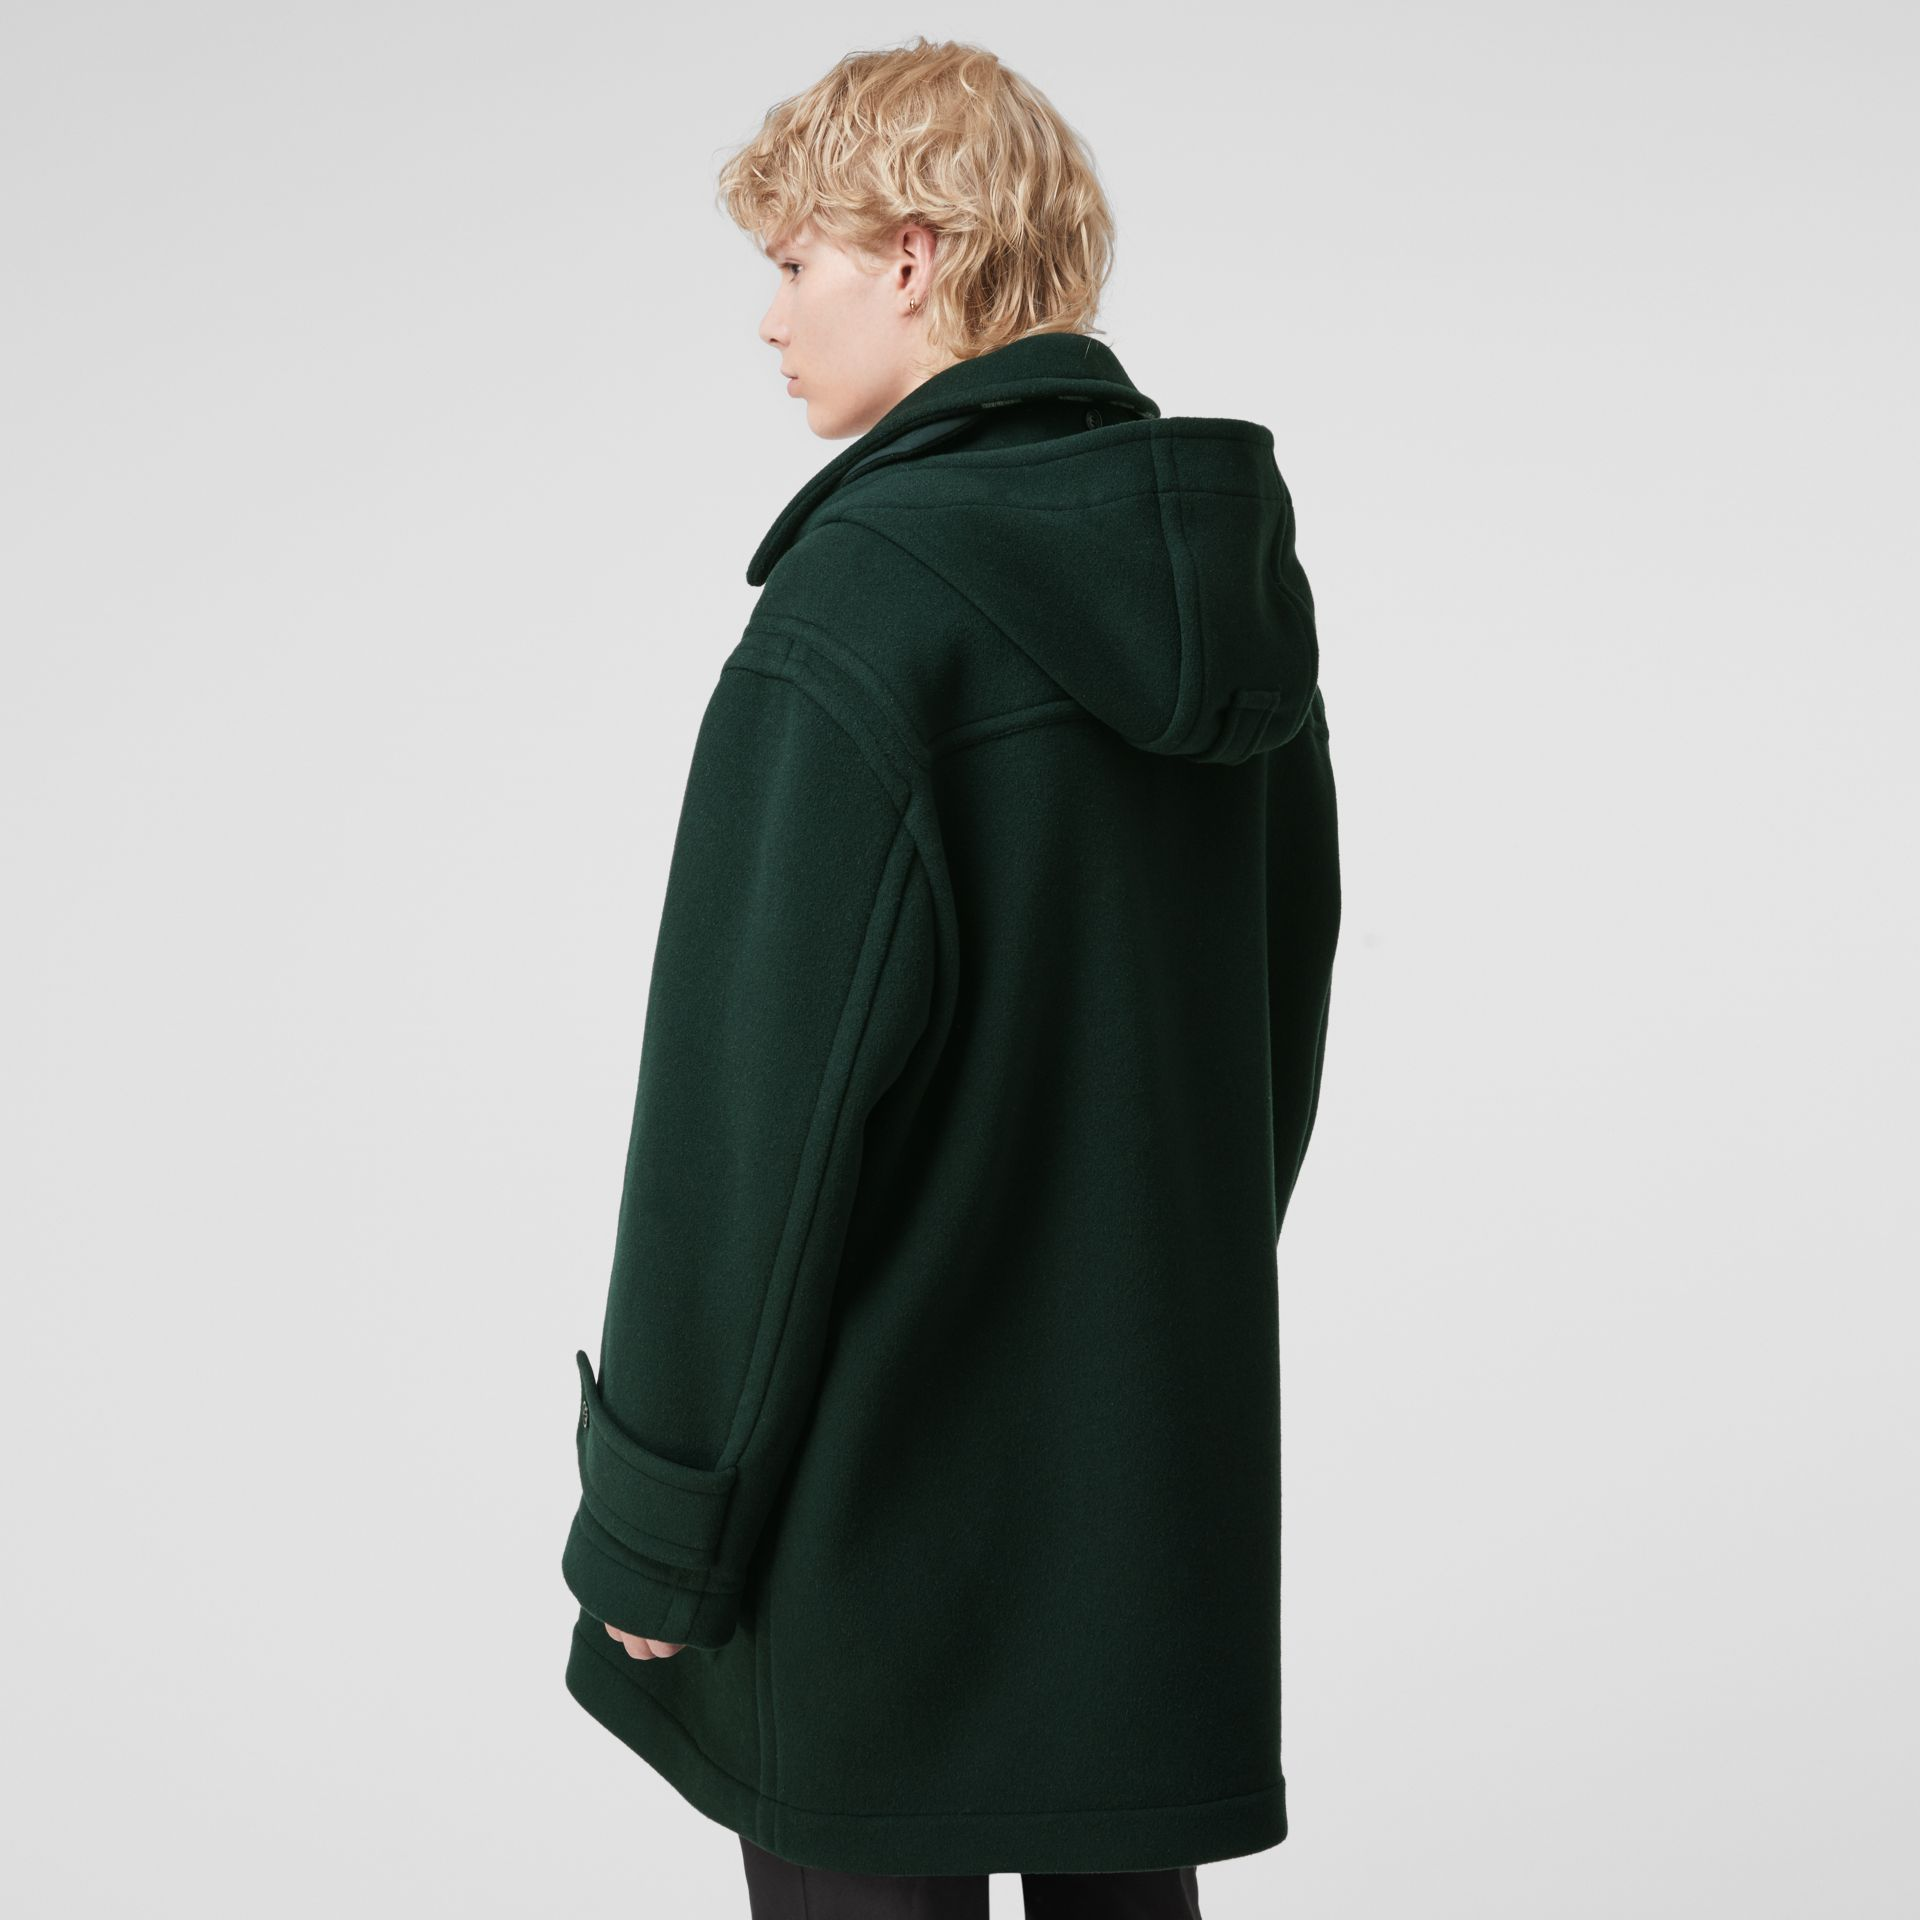 Gosha x Burberry Oversized Duffle Coat in Dark Forest Green | Burberry United Kingdom - gallery image 5